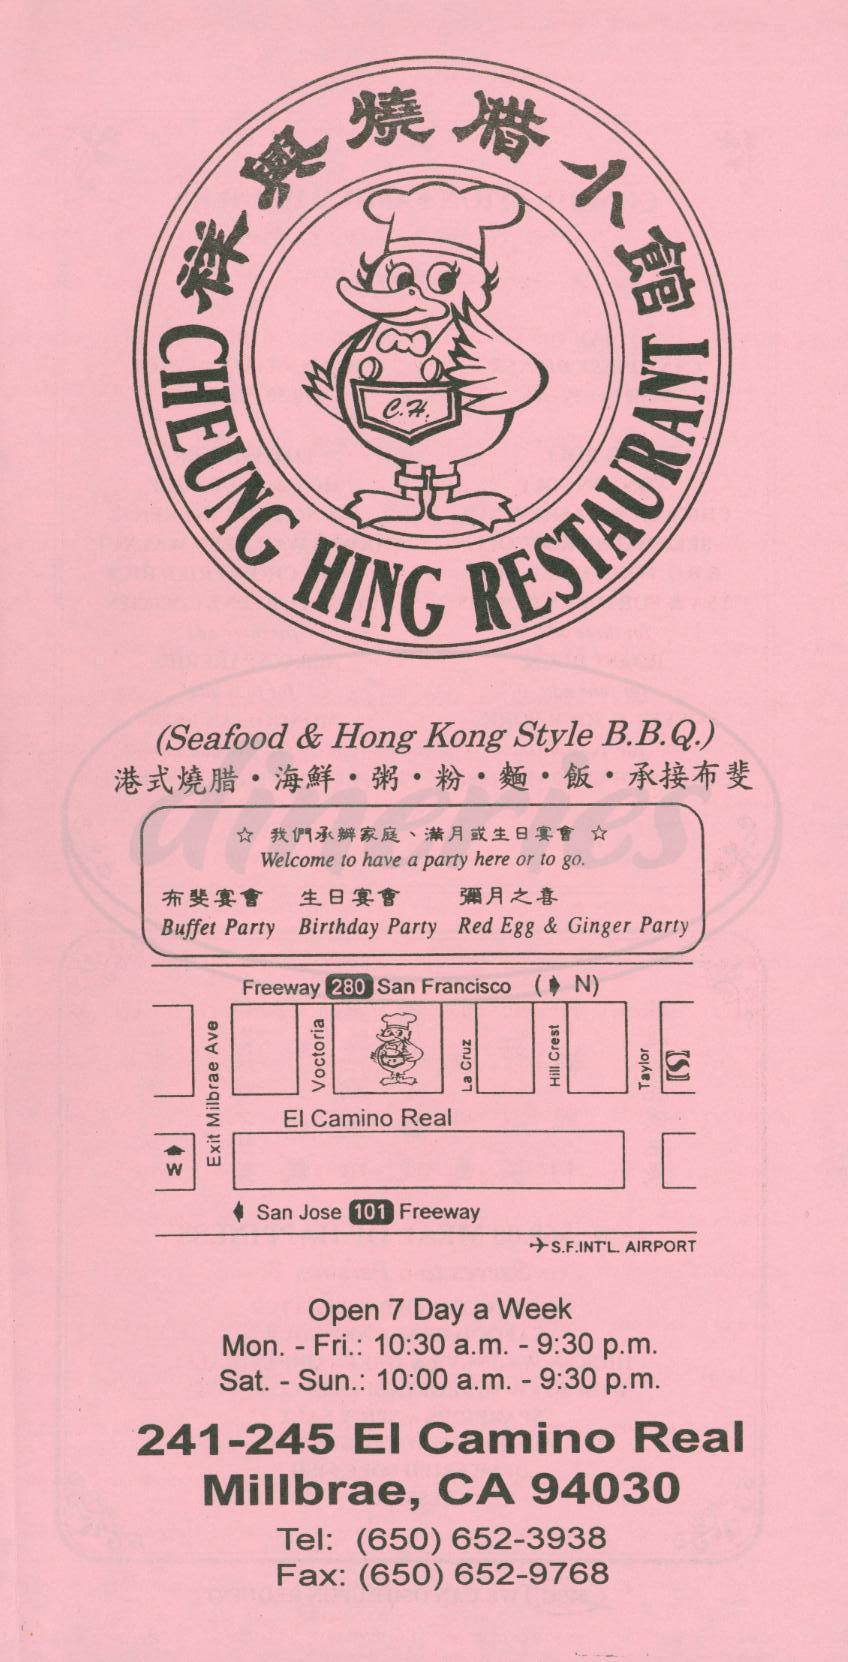 menu for Cheung Hing Restaurant